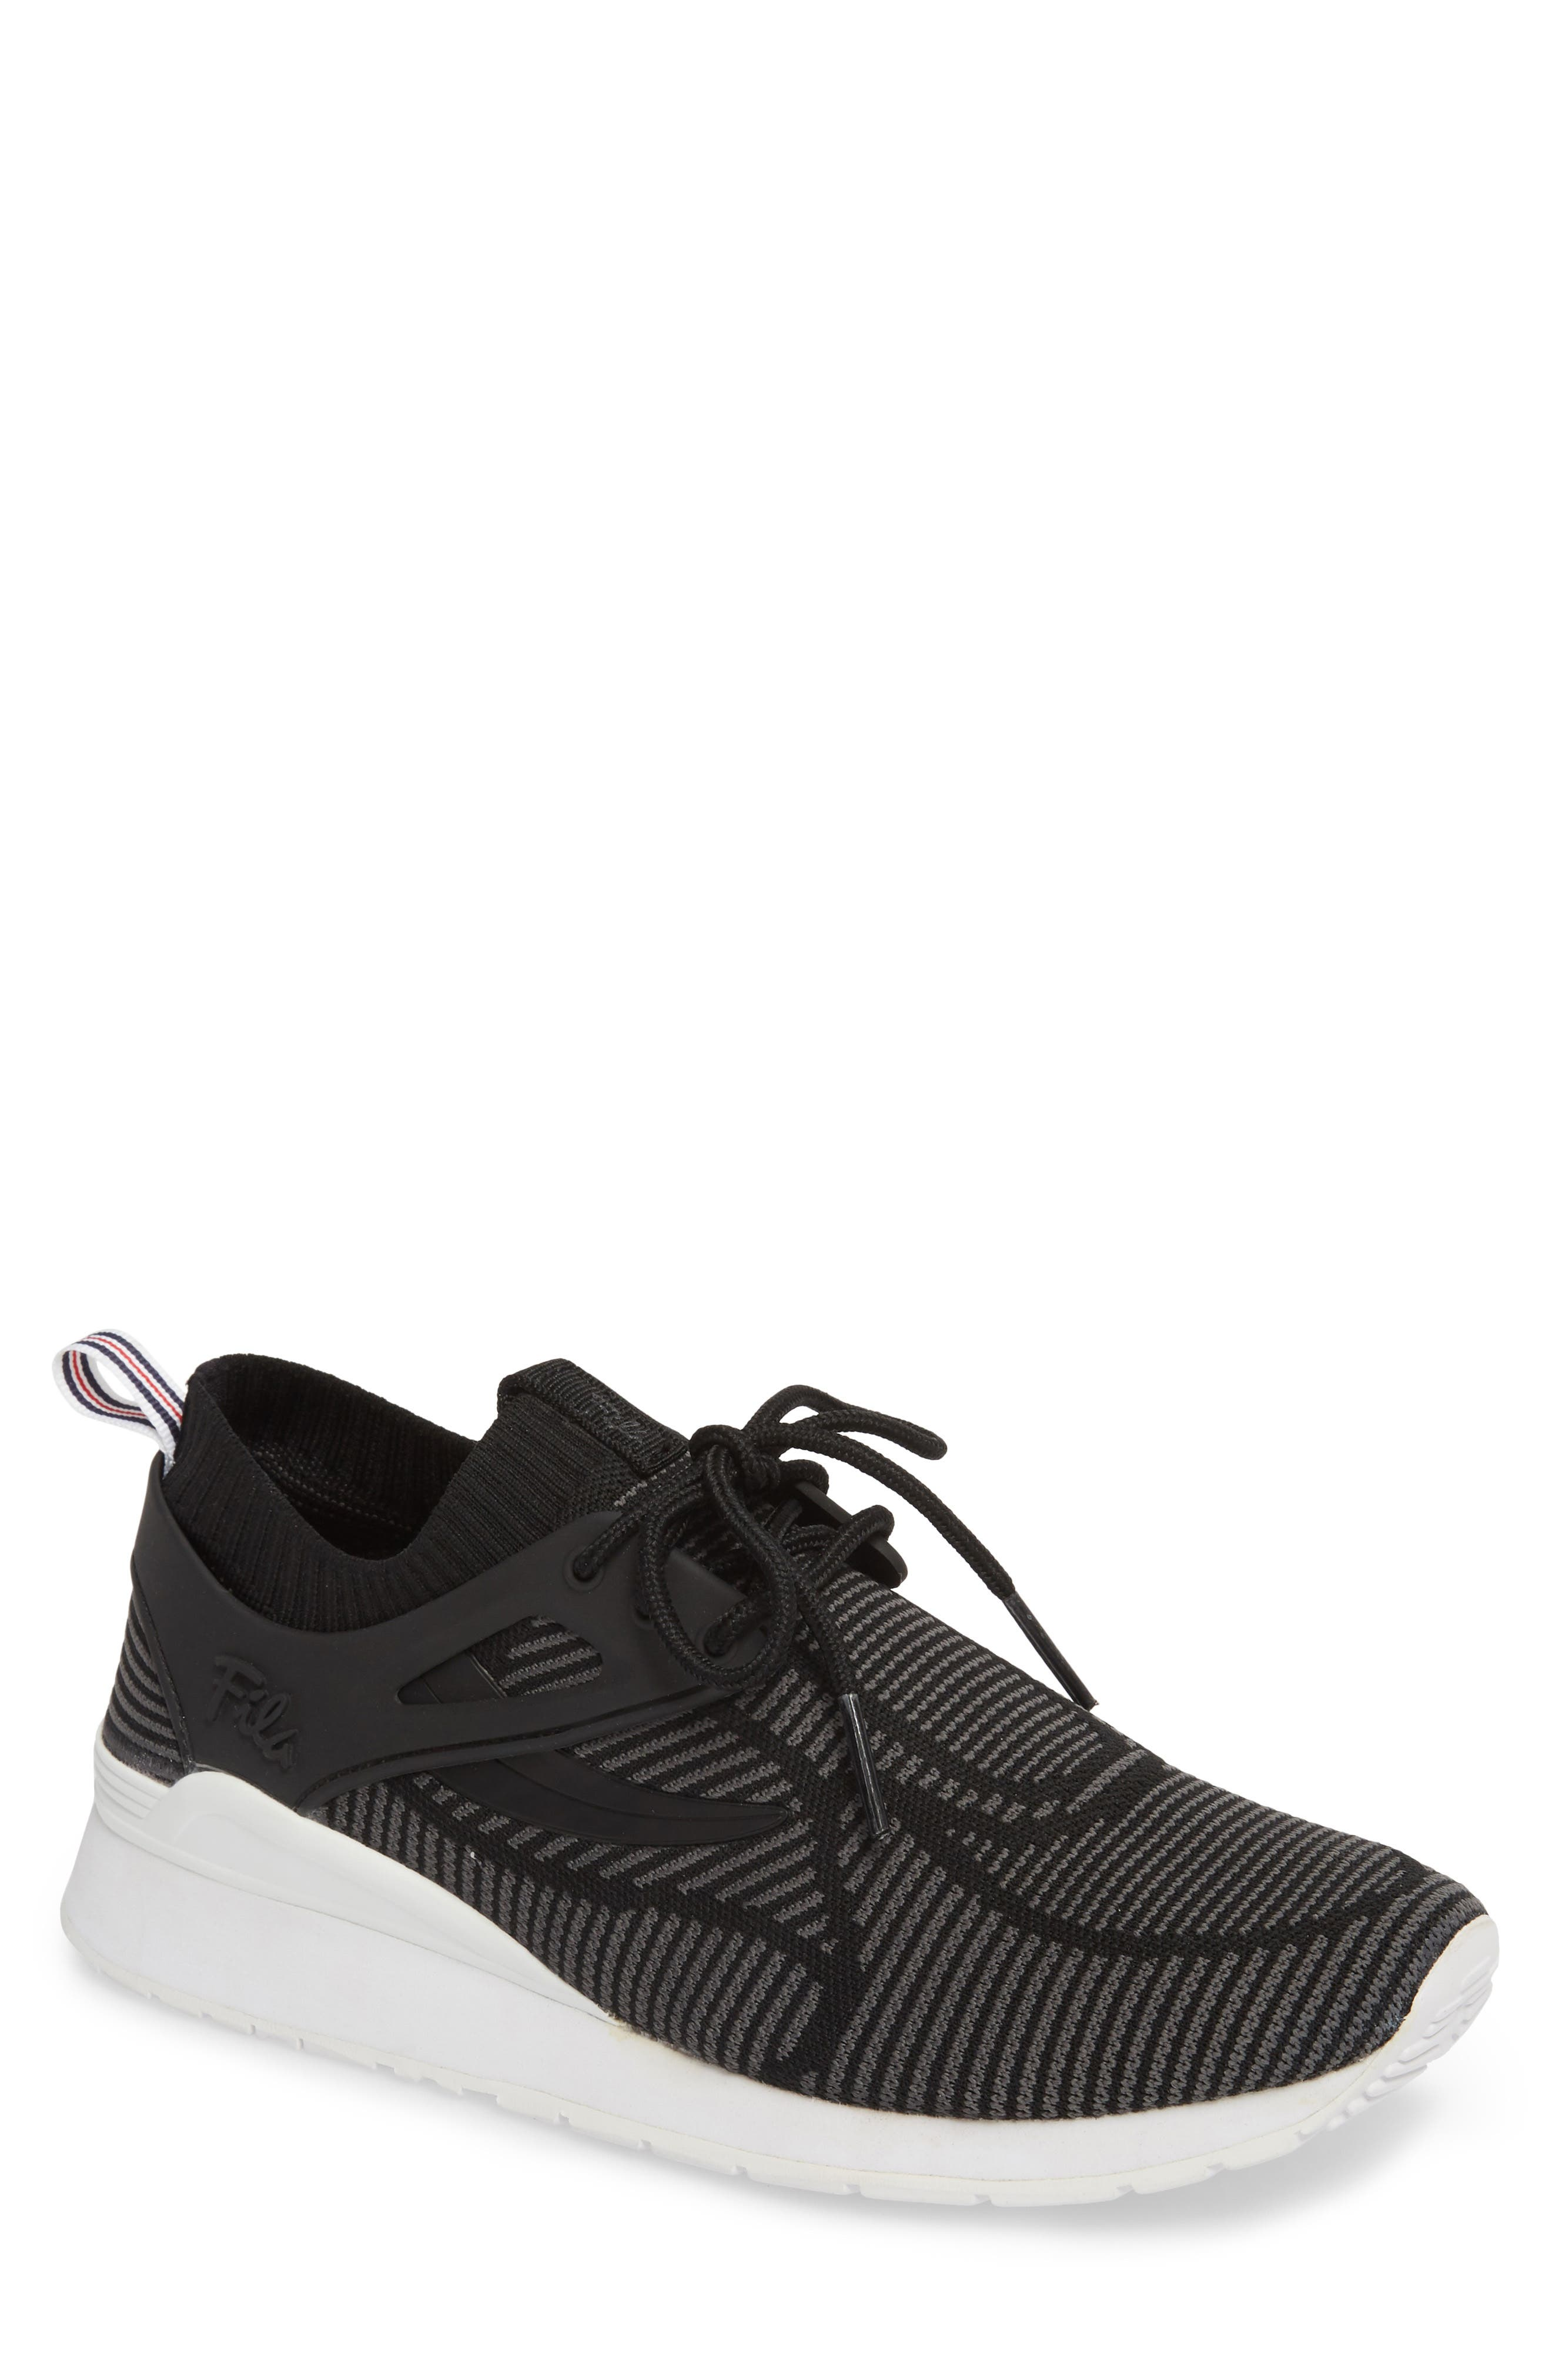 Overpass 2.0 Knit Sneaker,                             Main thumbnail 1, color,                             BLACK/ WHITE